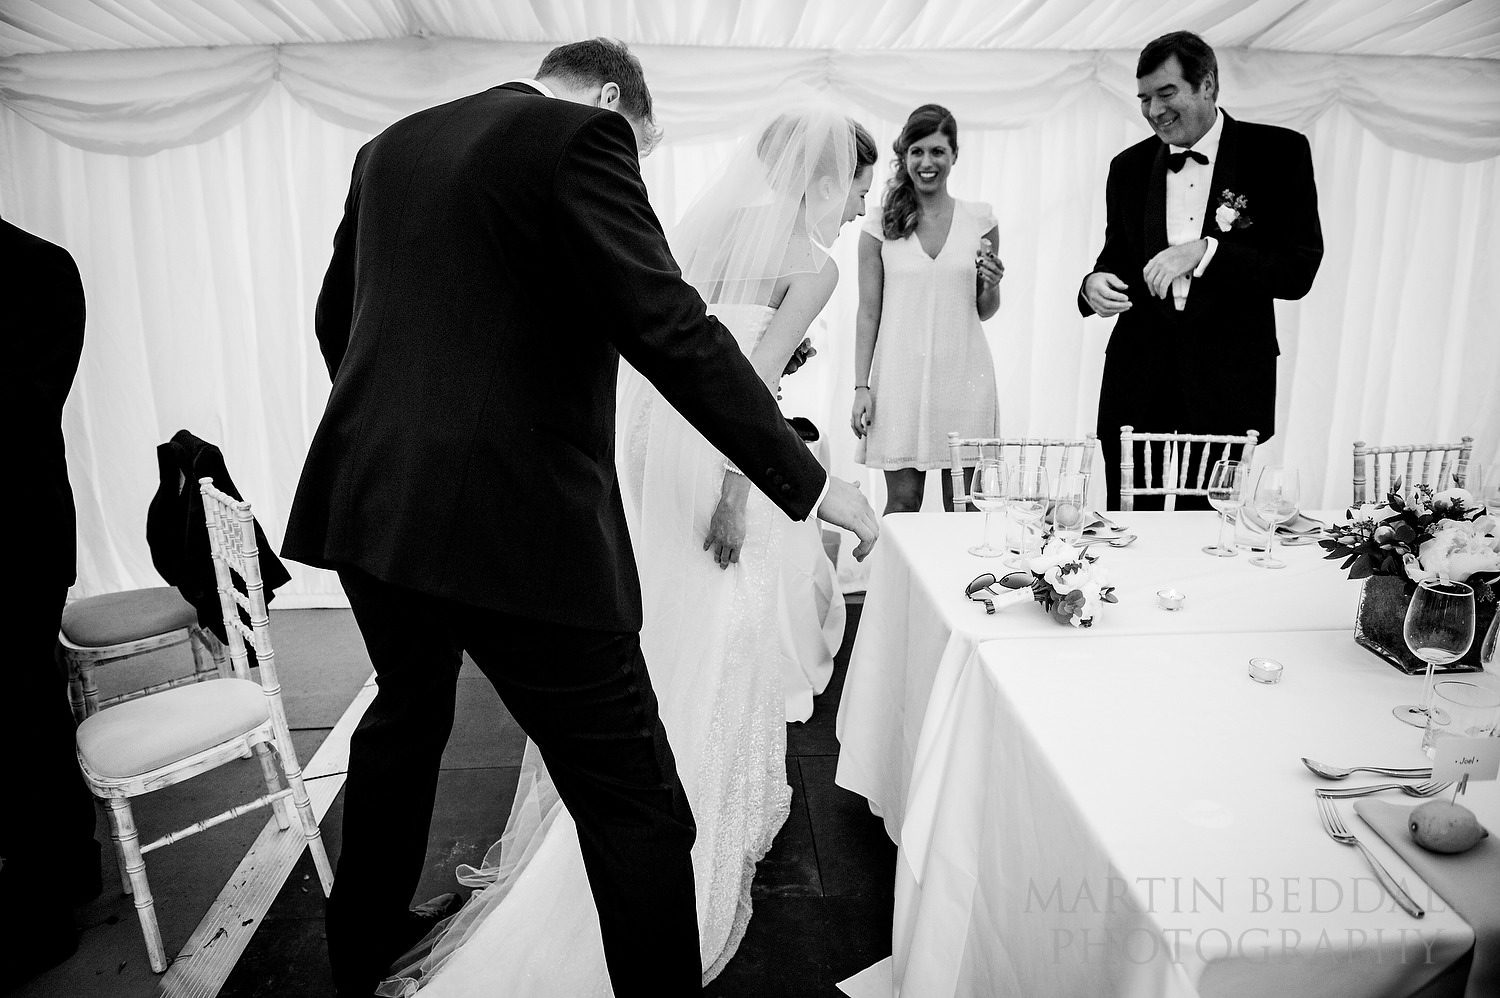 Stepping on the bride's dress